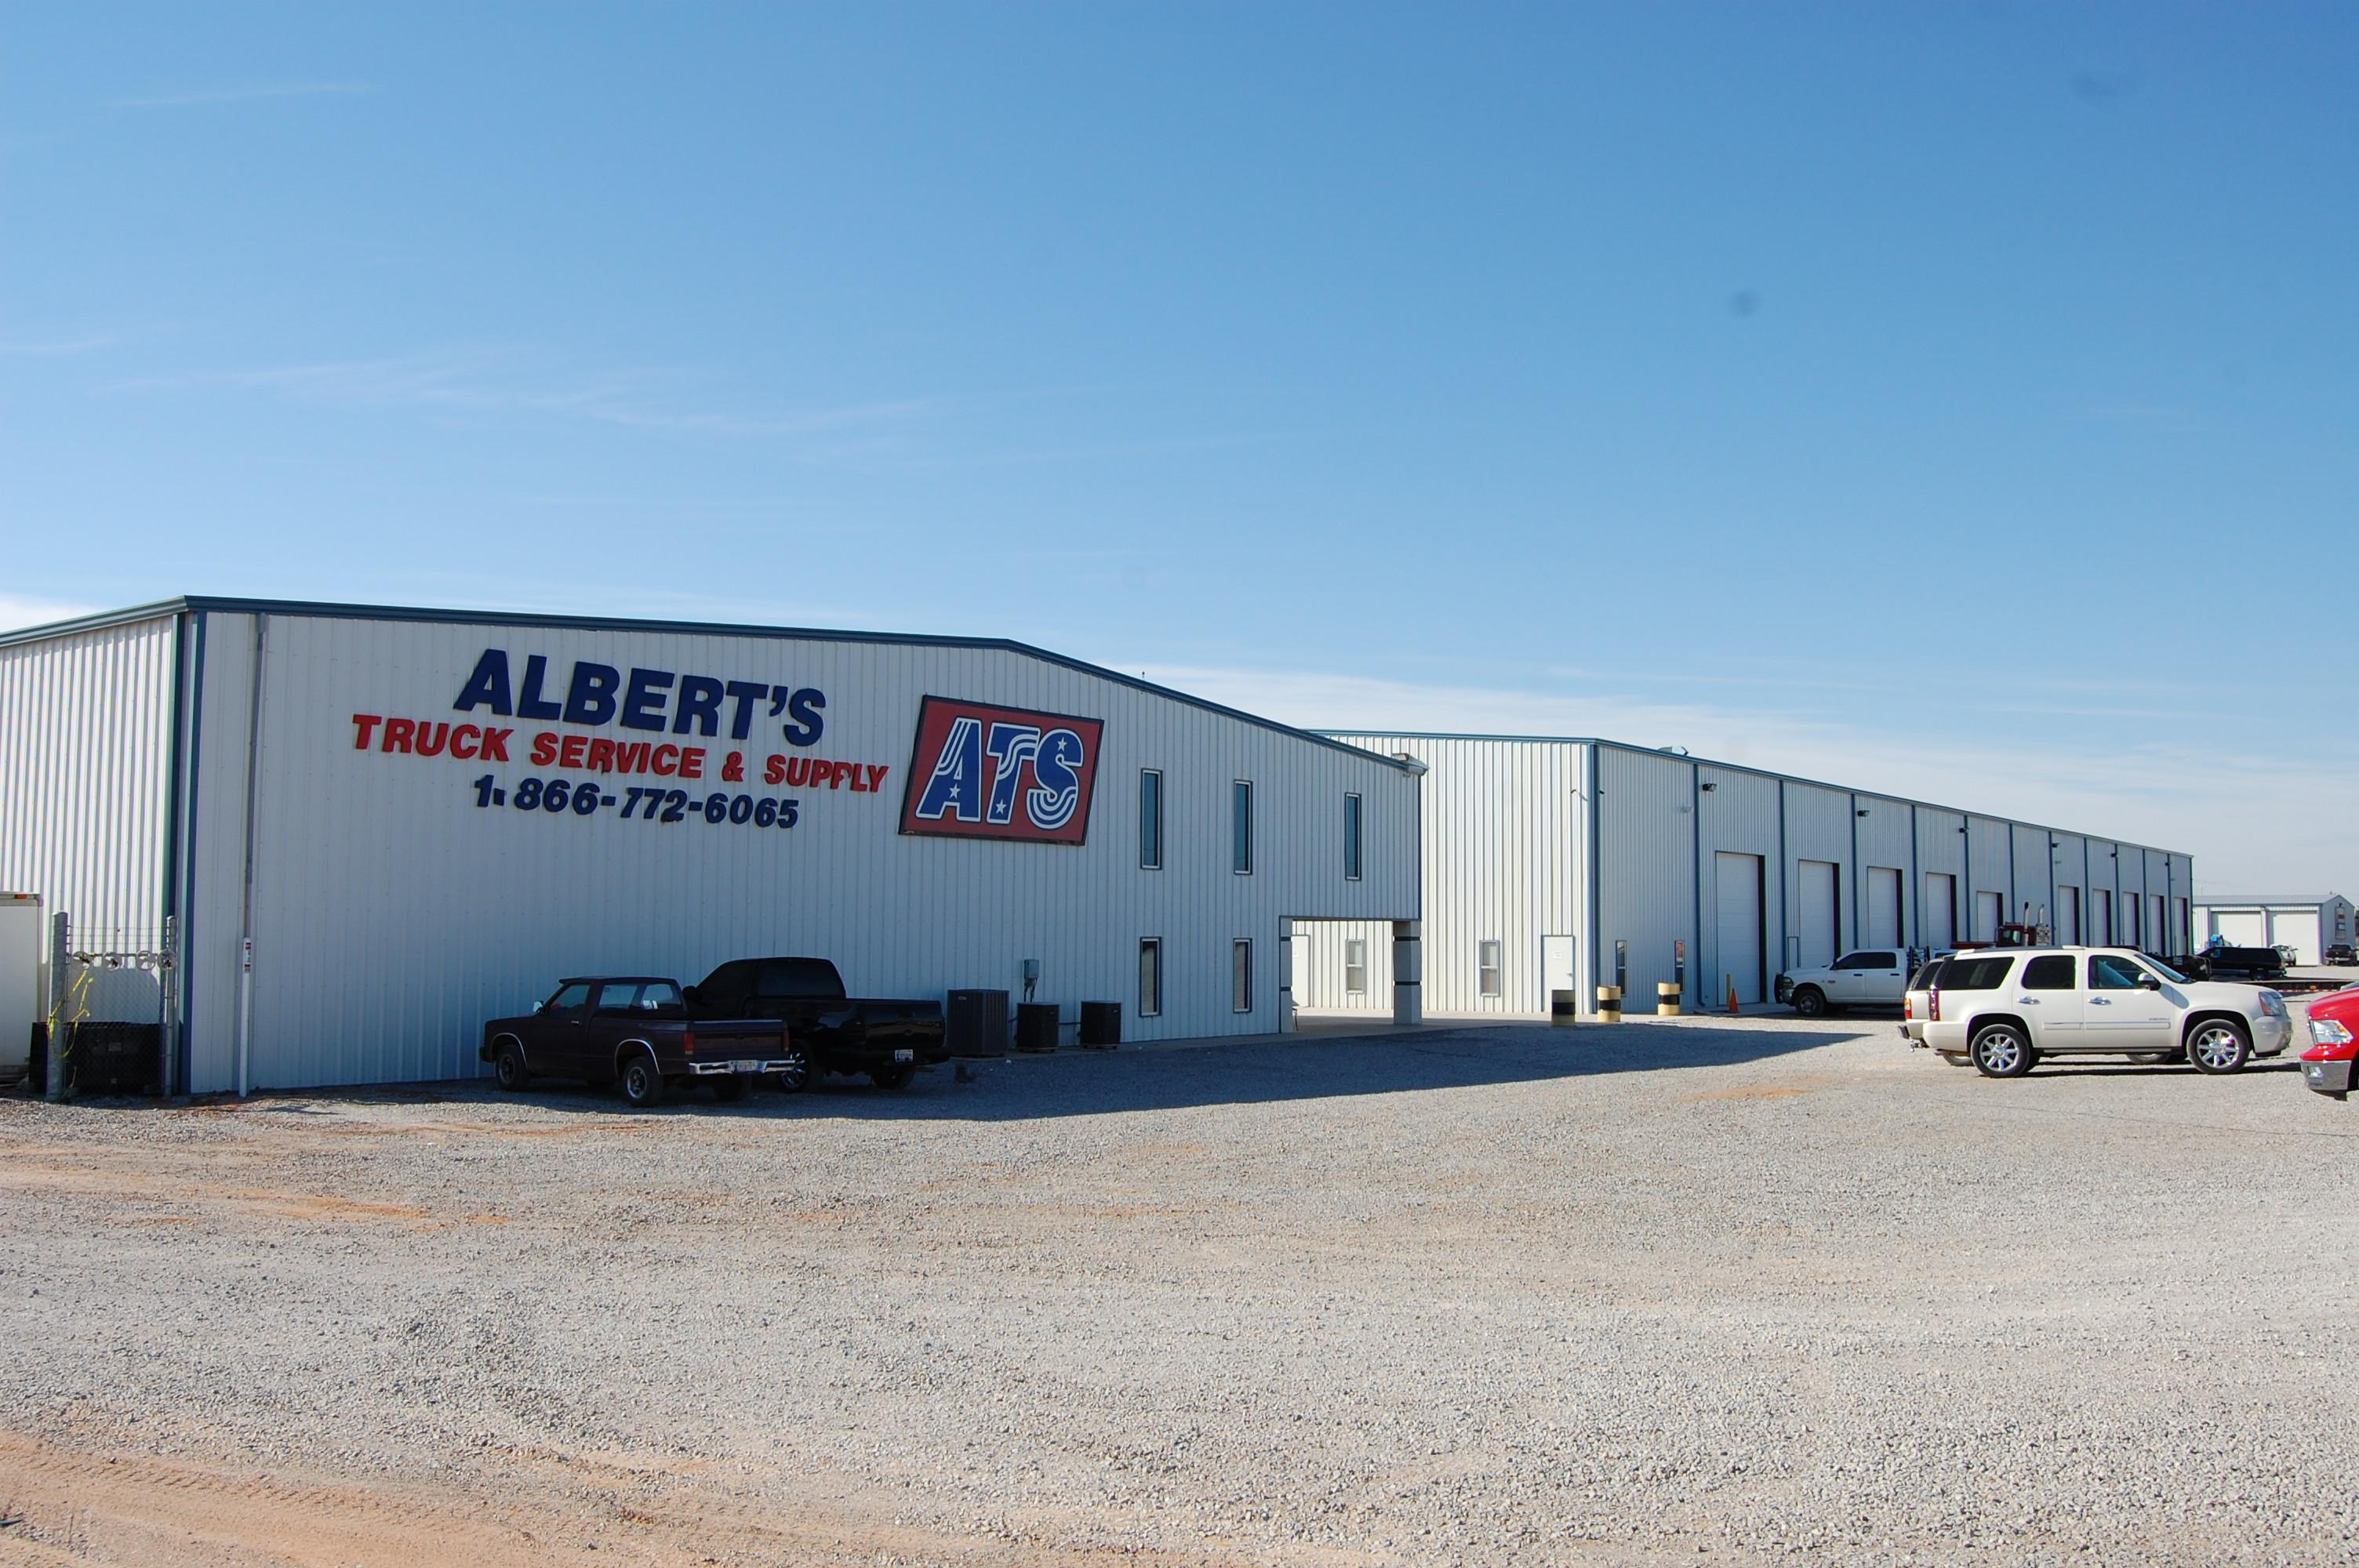 Weatherford (OK) United States  city photo : ATS Albert's Truck Service in Weatherford, OK 580 772 6065